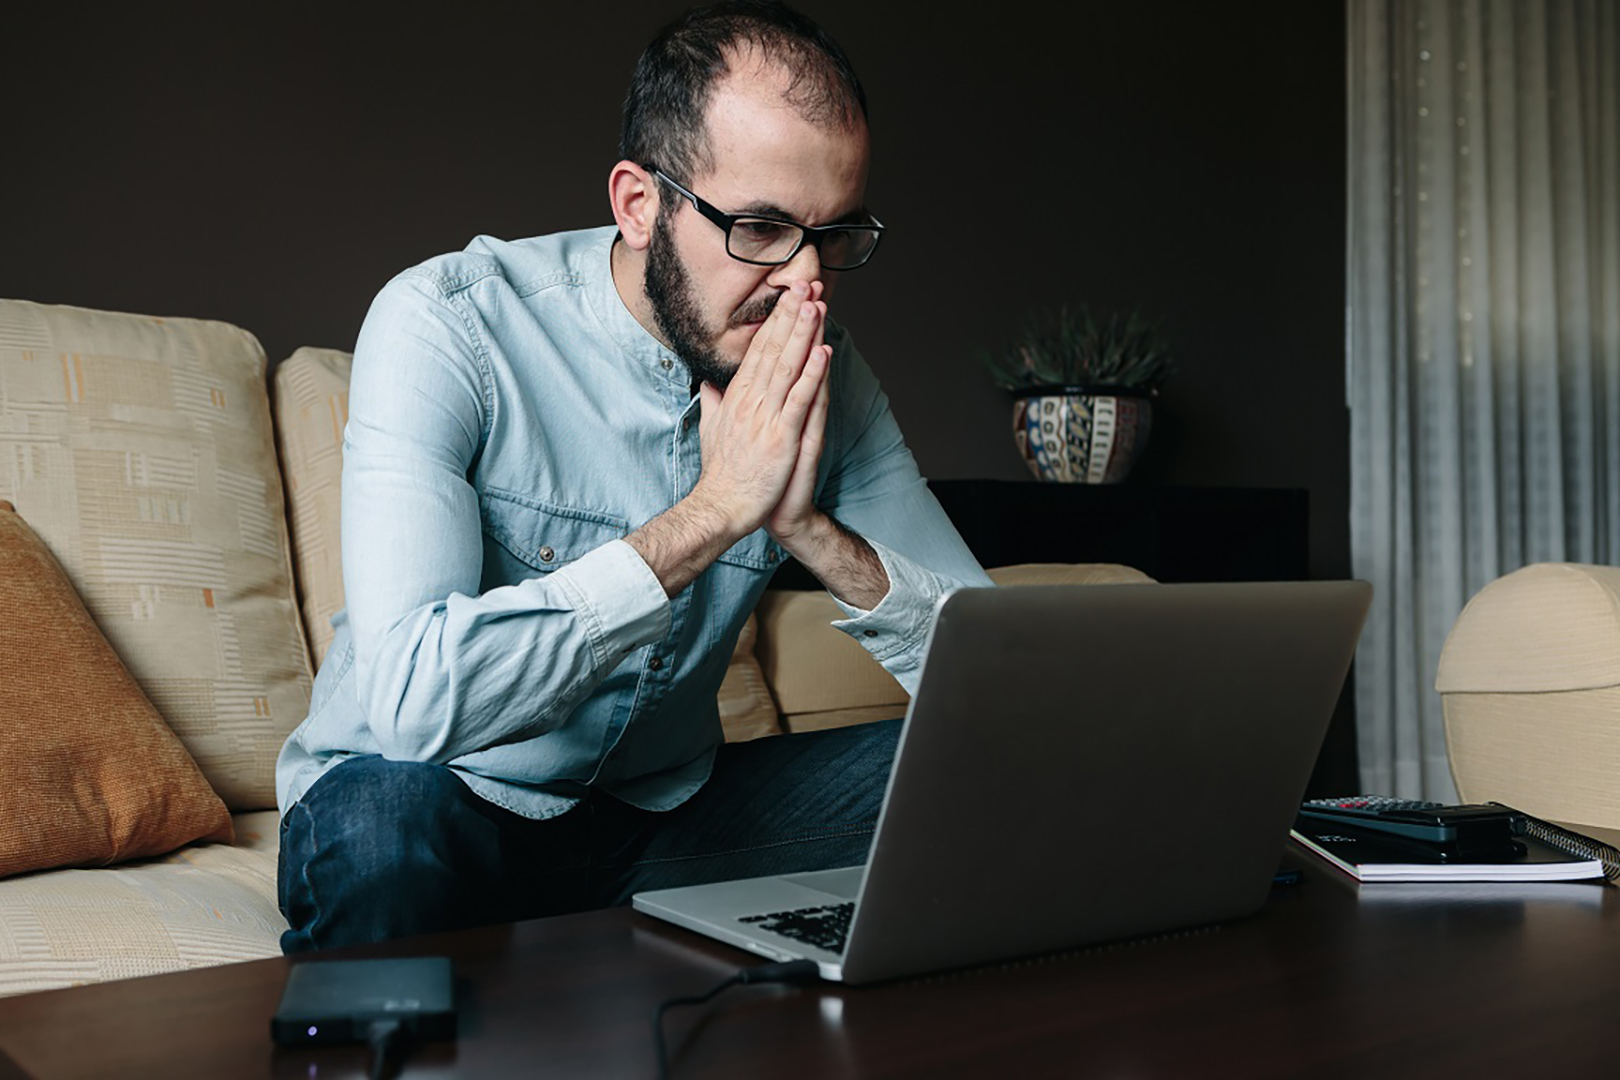 Worried man reading bad news on the laptop computer while working remotely at home. Telecommuting, telework and teleworking concept.